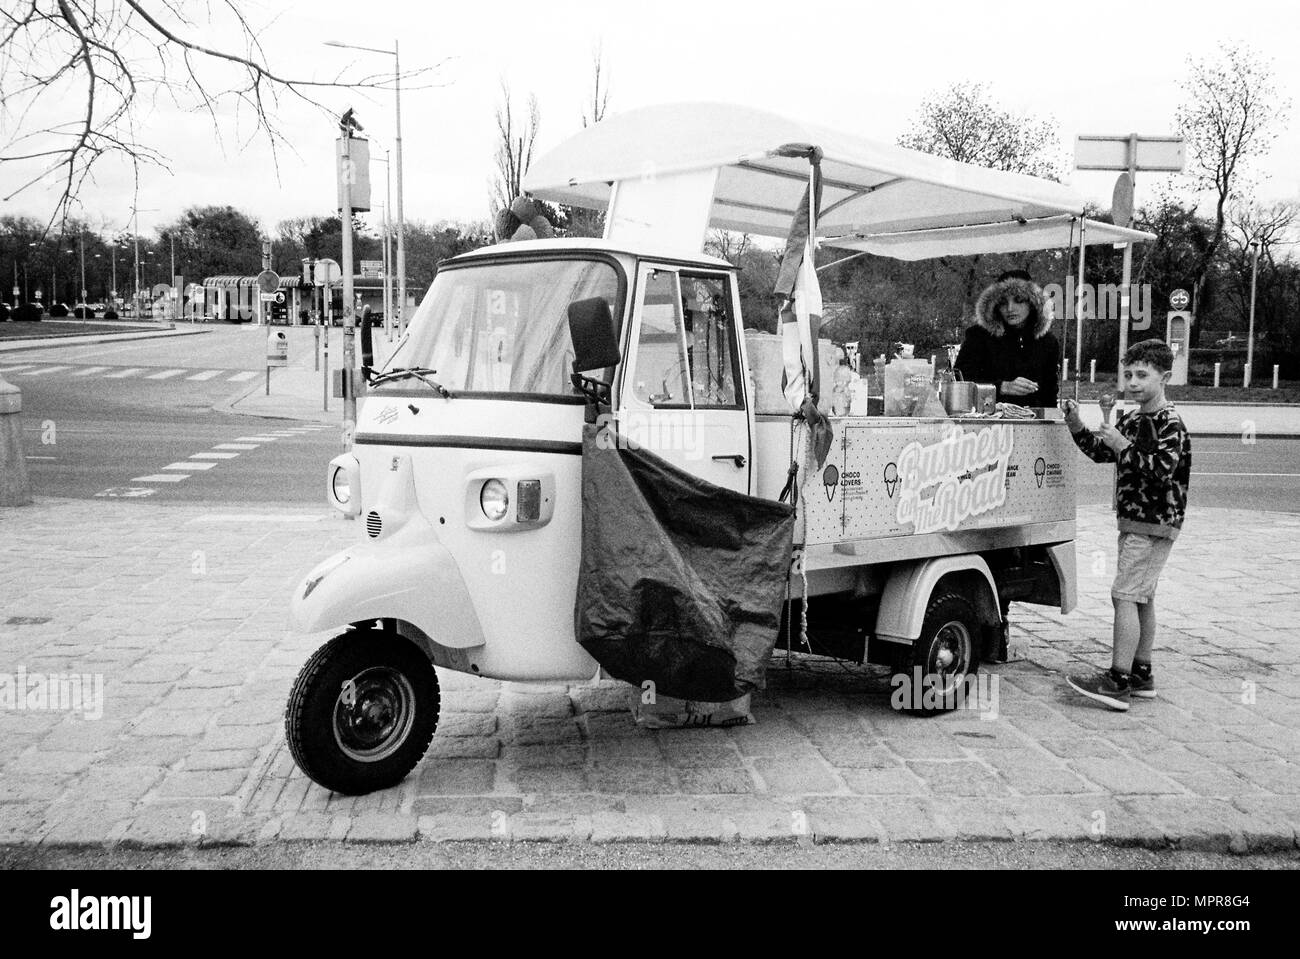 vintage ice cream vendor stockfotos vintage ice cream. Black Bedroom Furniture Sets. Home Design Ideas